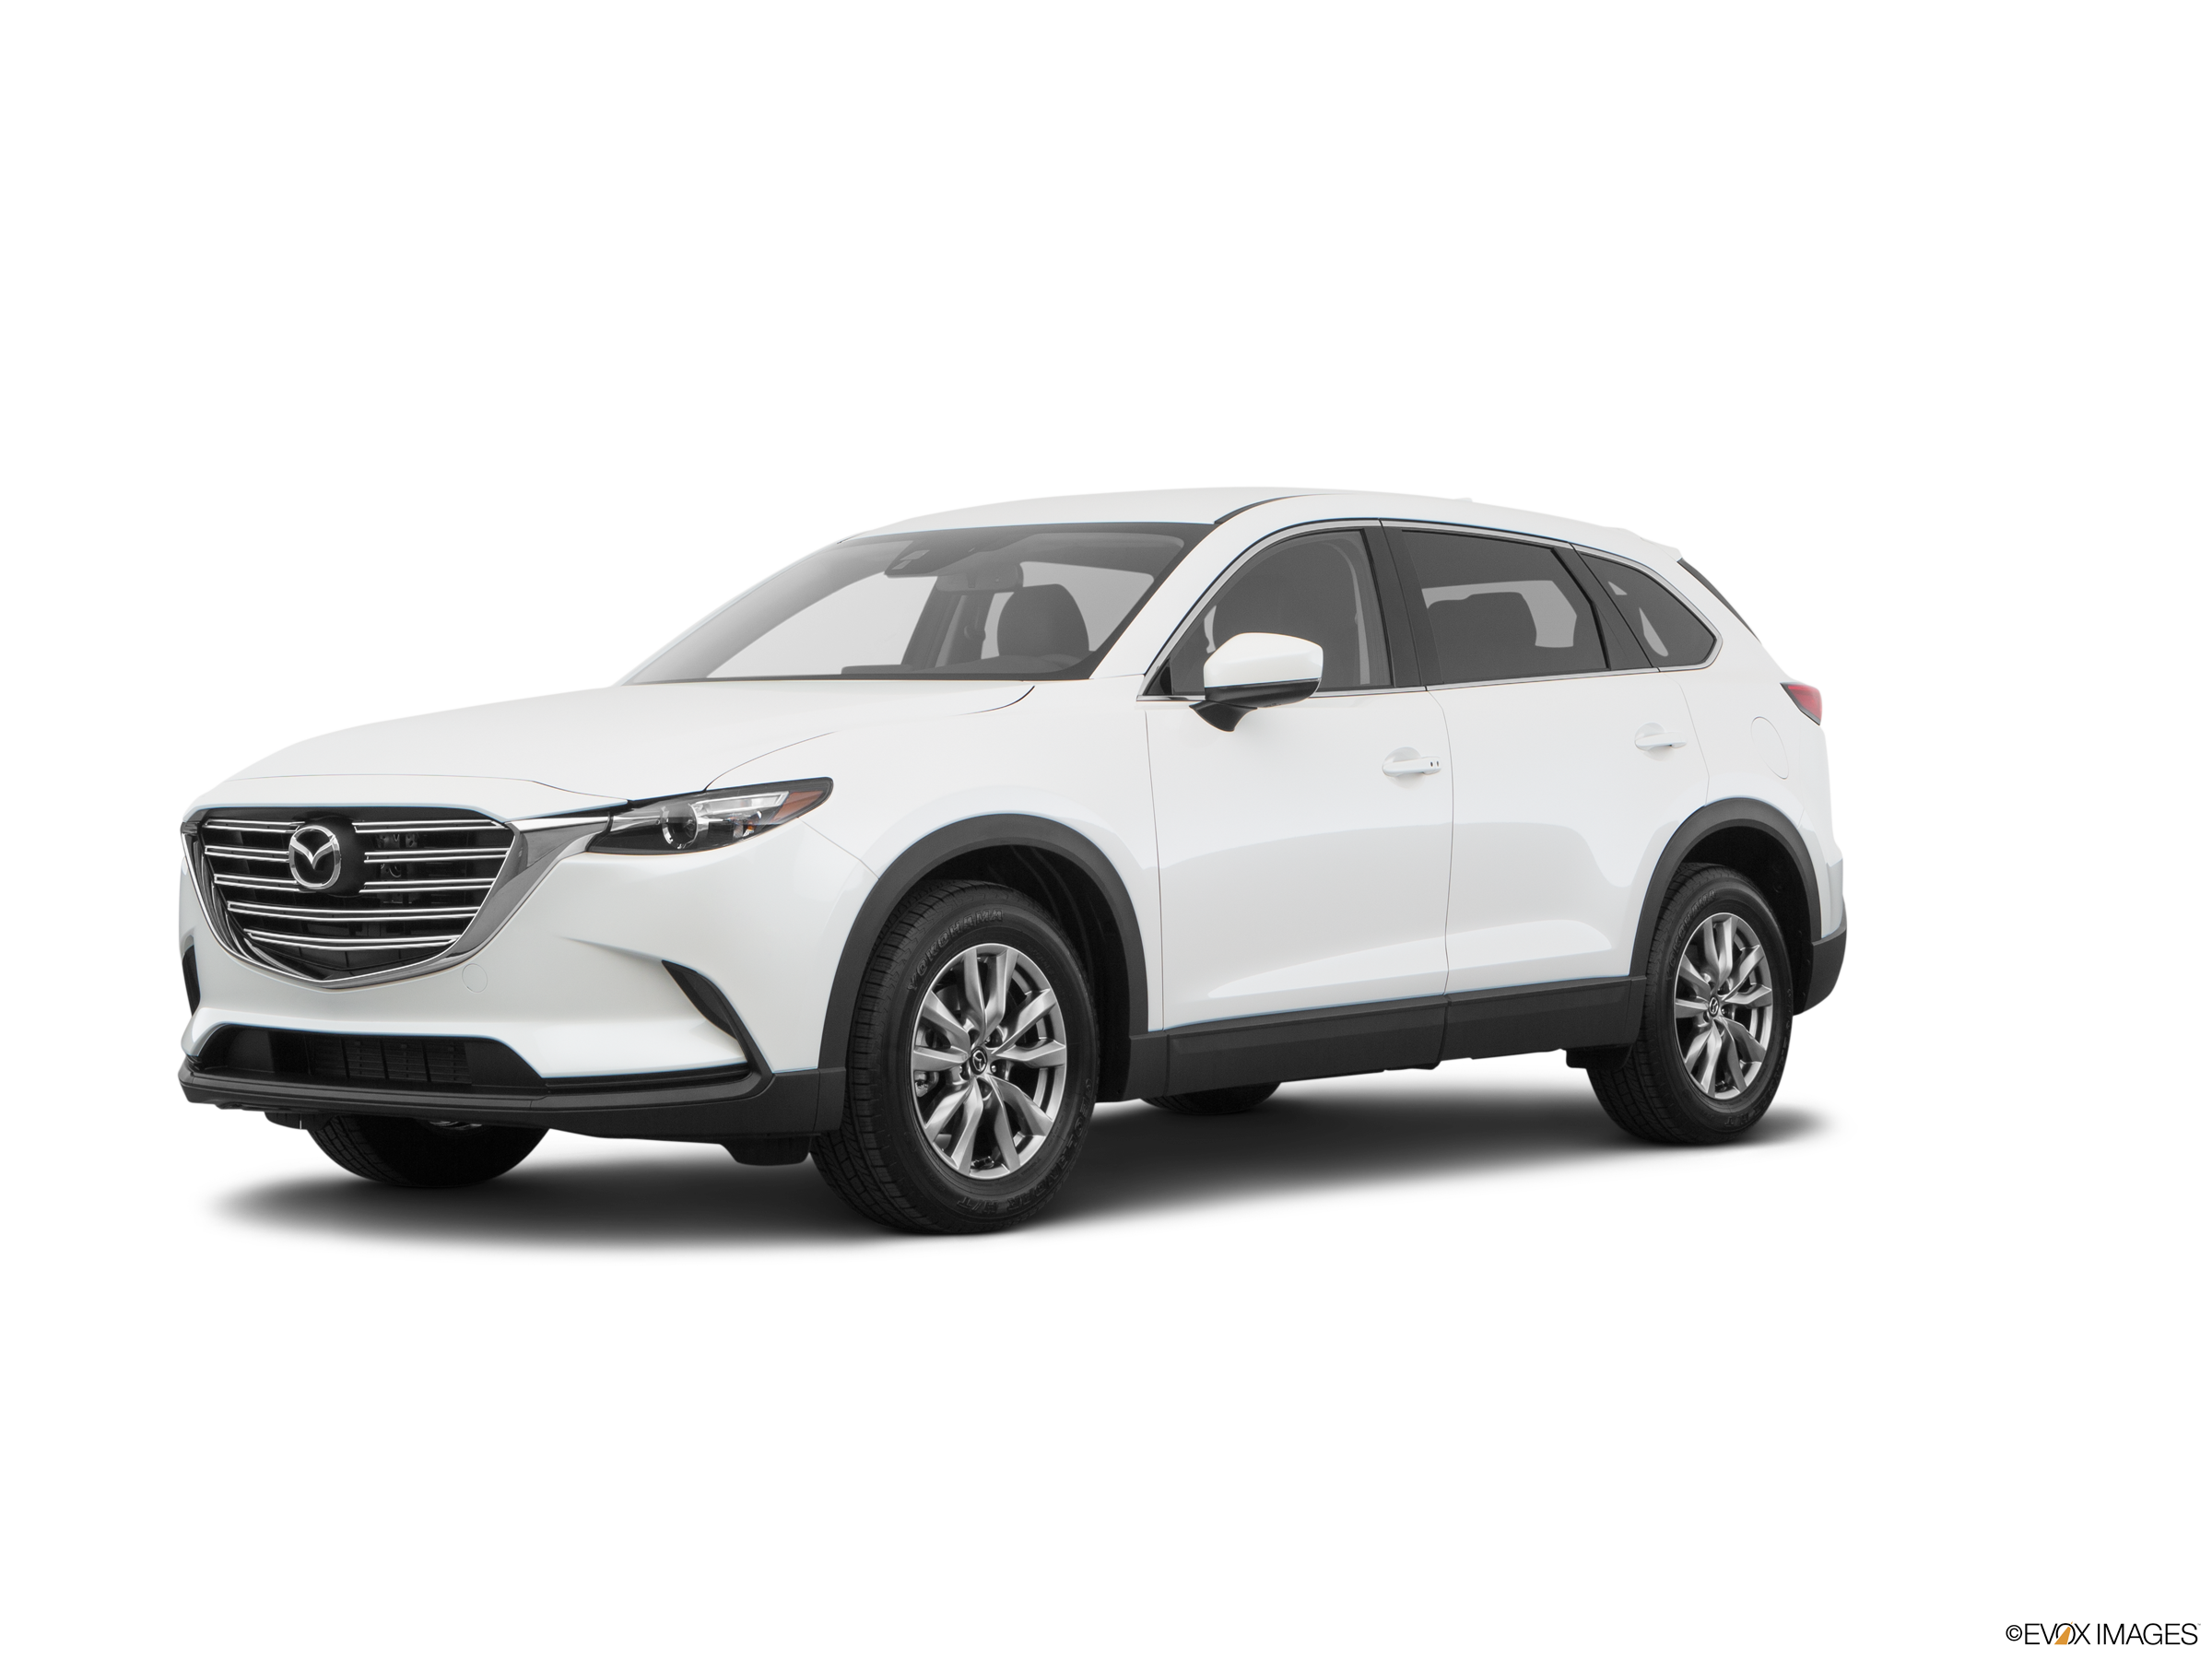 Top Consumer Rated Crossovers of 2019 - 2019 Mazda CX-9